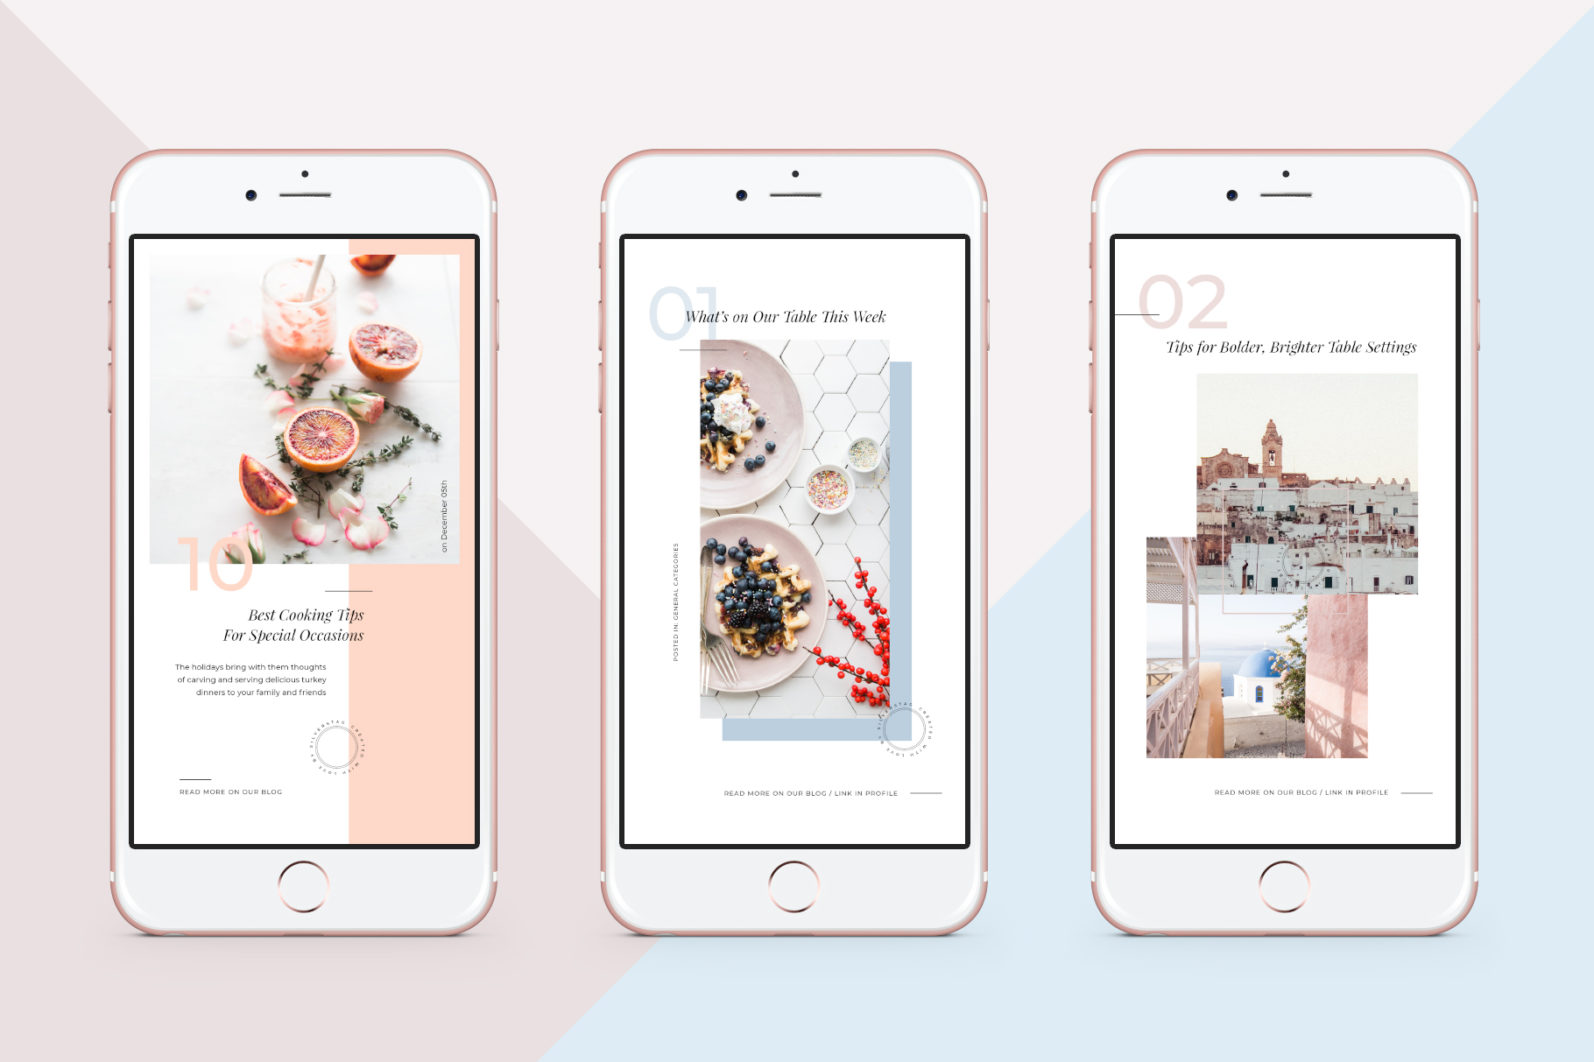 CANVA Modern Instagram Stories Pack - 04 animated modern food travel instagram stories pack 1 -